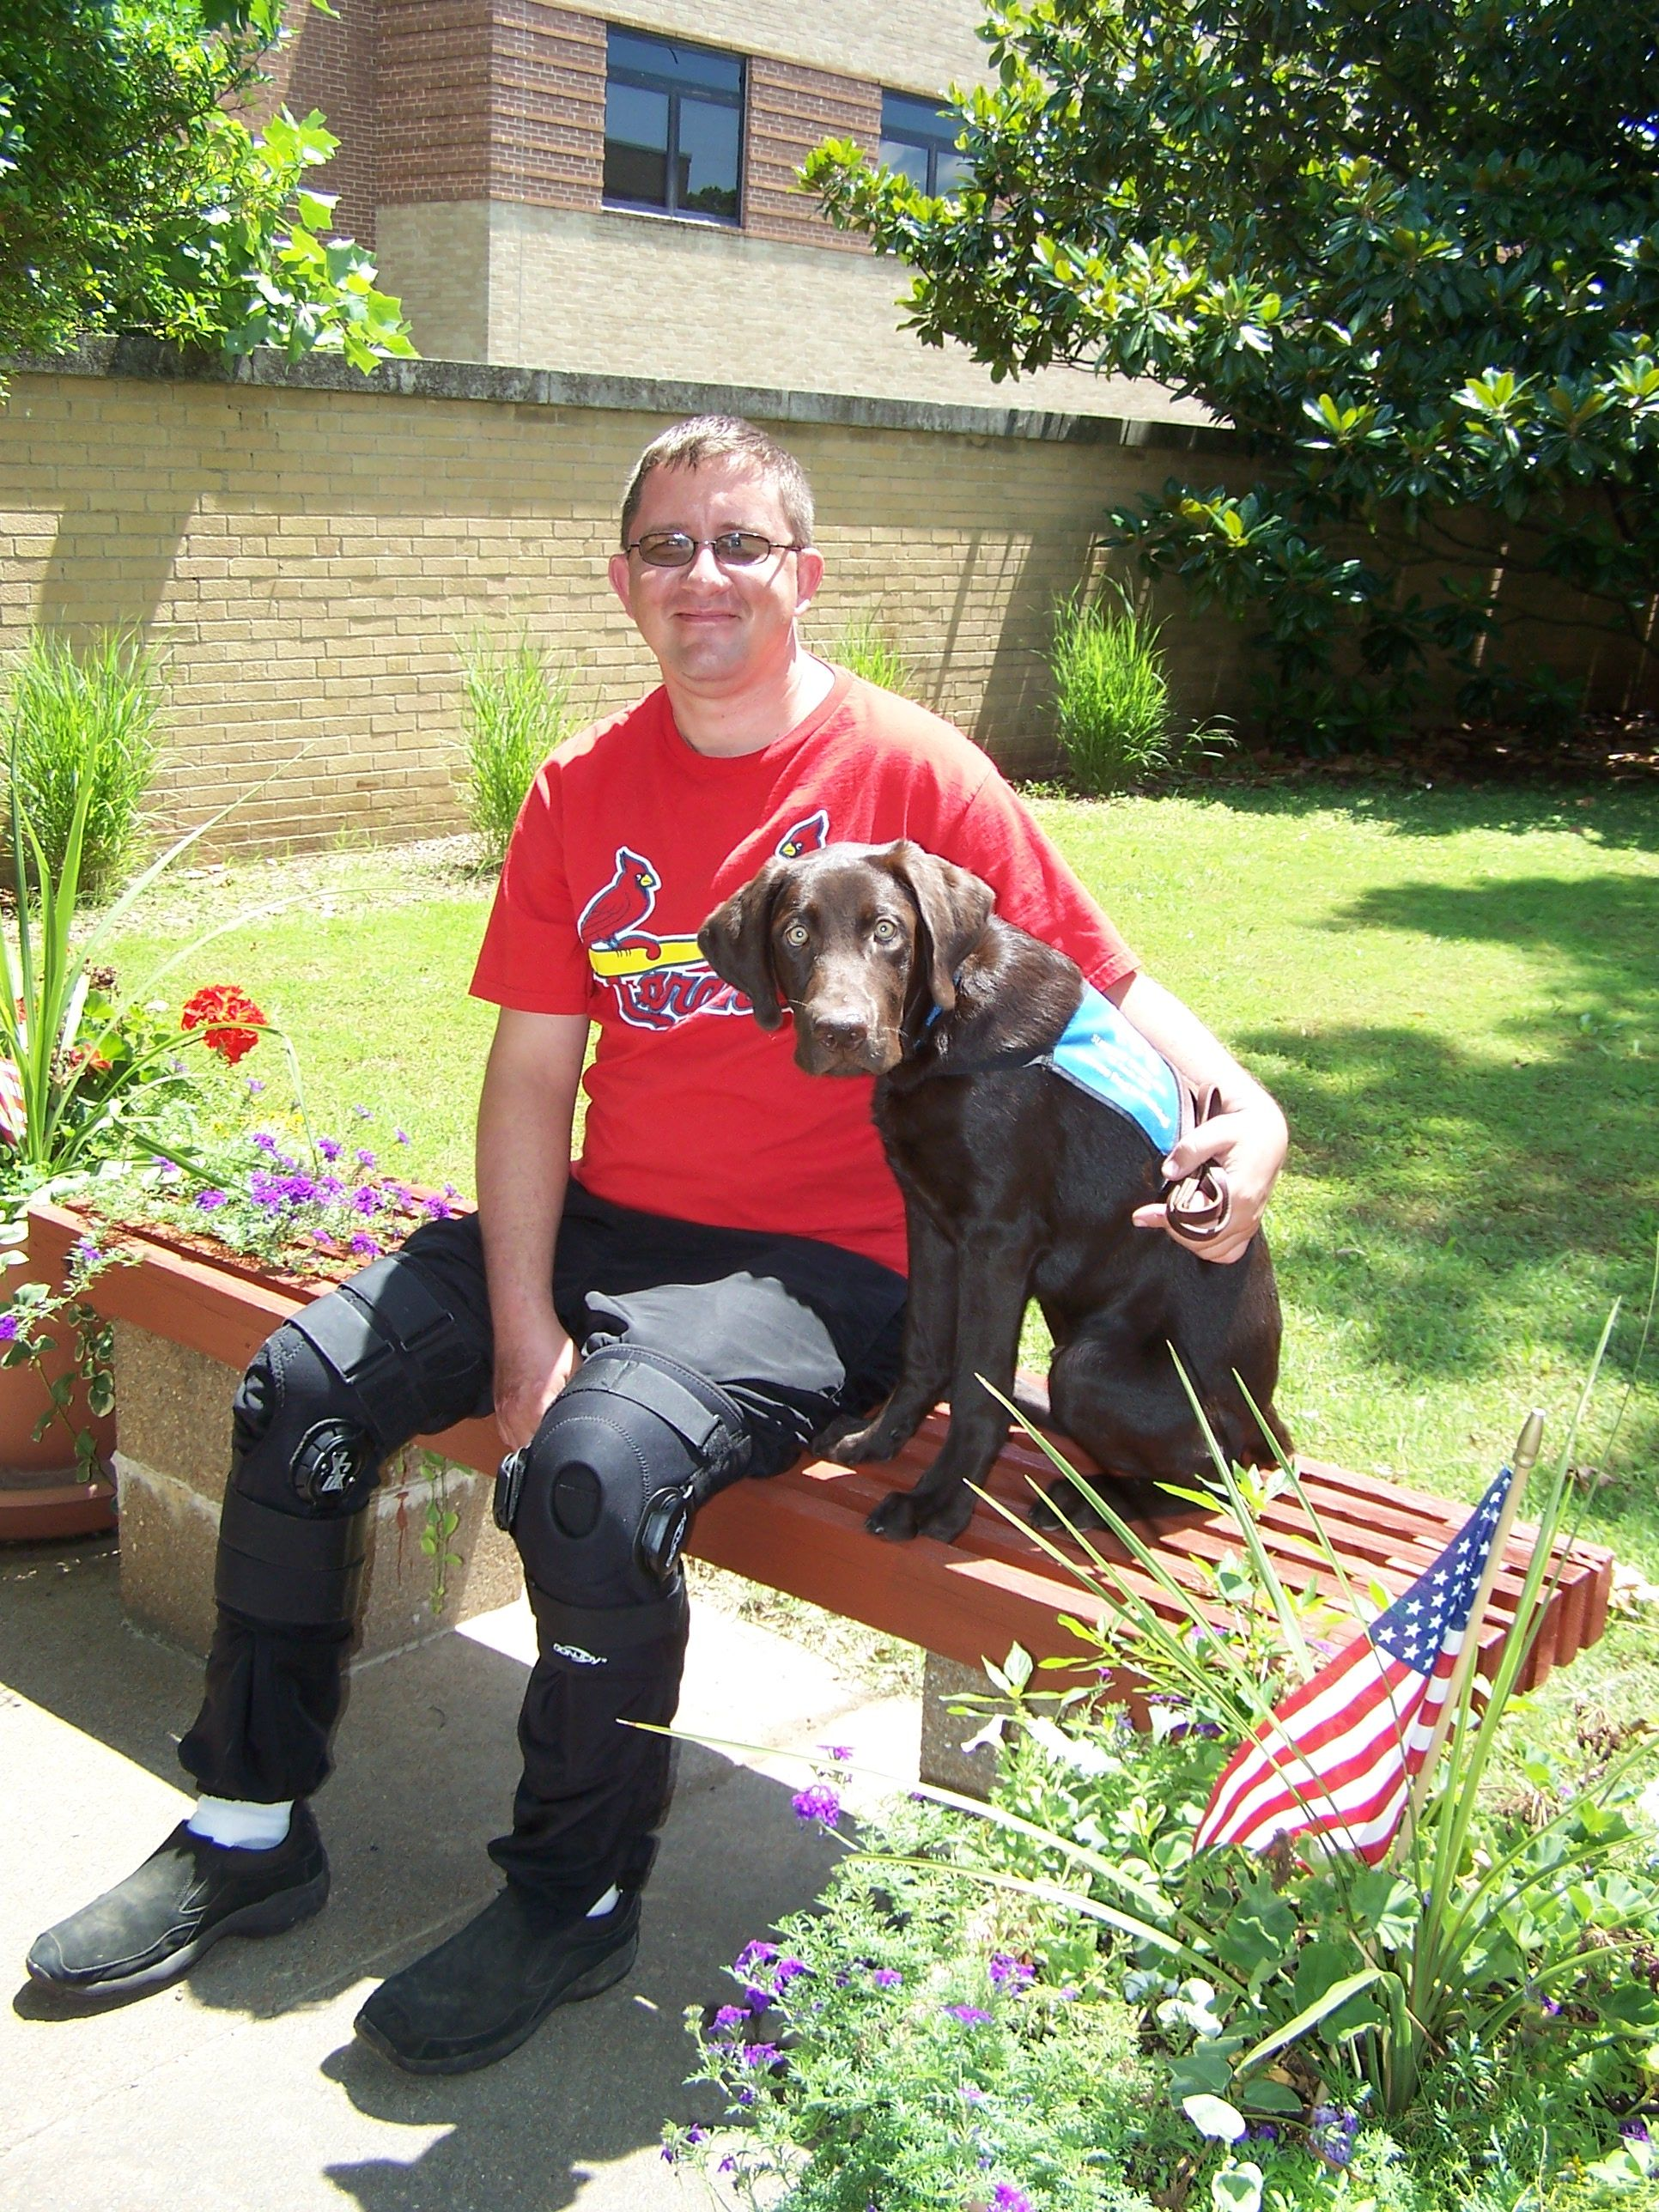 NonProfit Assistance Dog Provider and Trainer Support